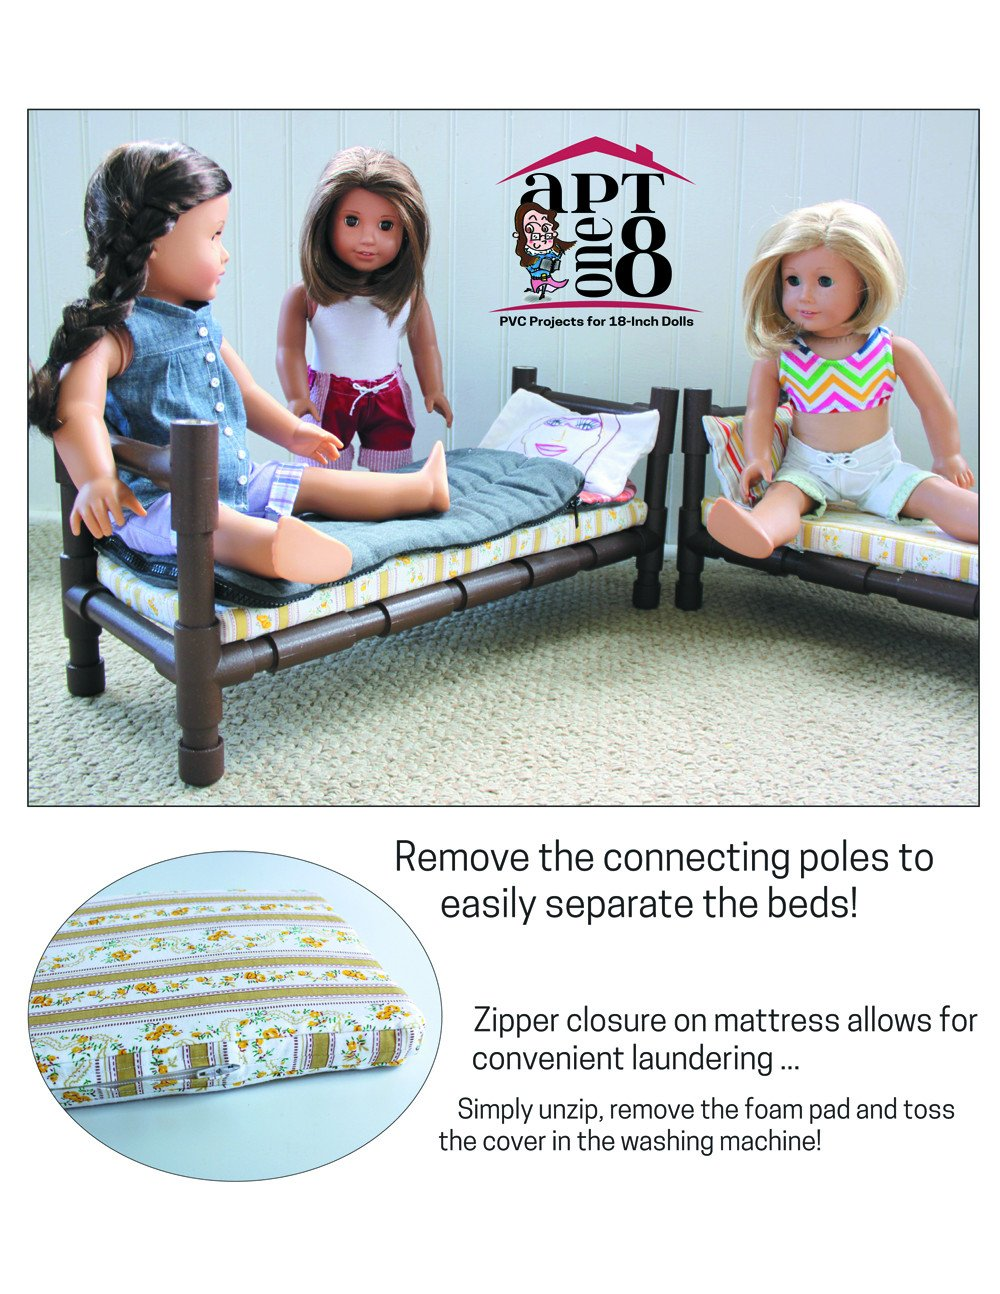 Aptone8 Convertible Bunk Bed Pattern 18 Inch Dolls Such As American